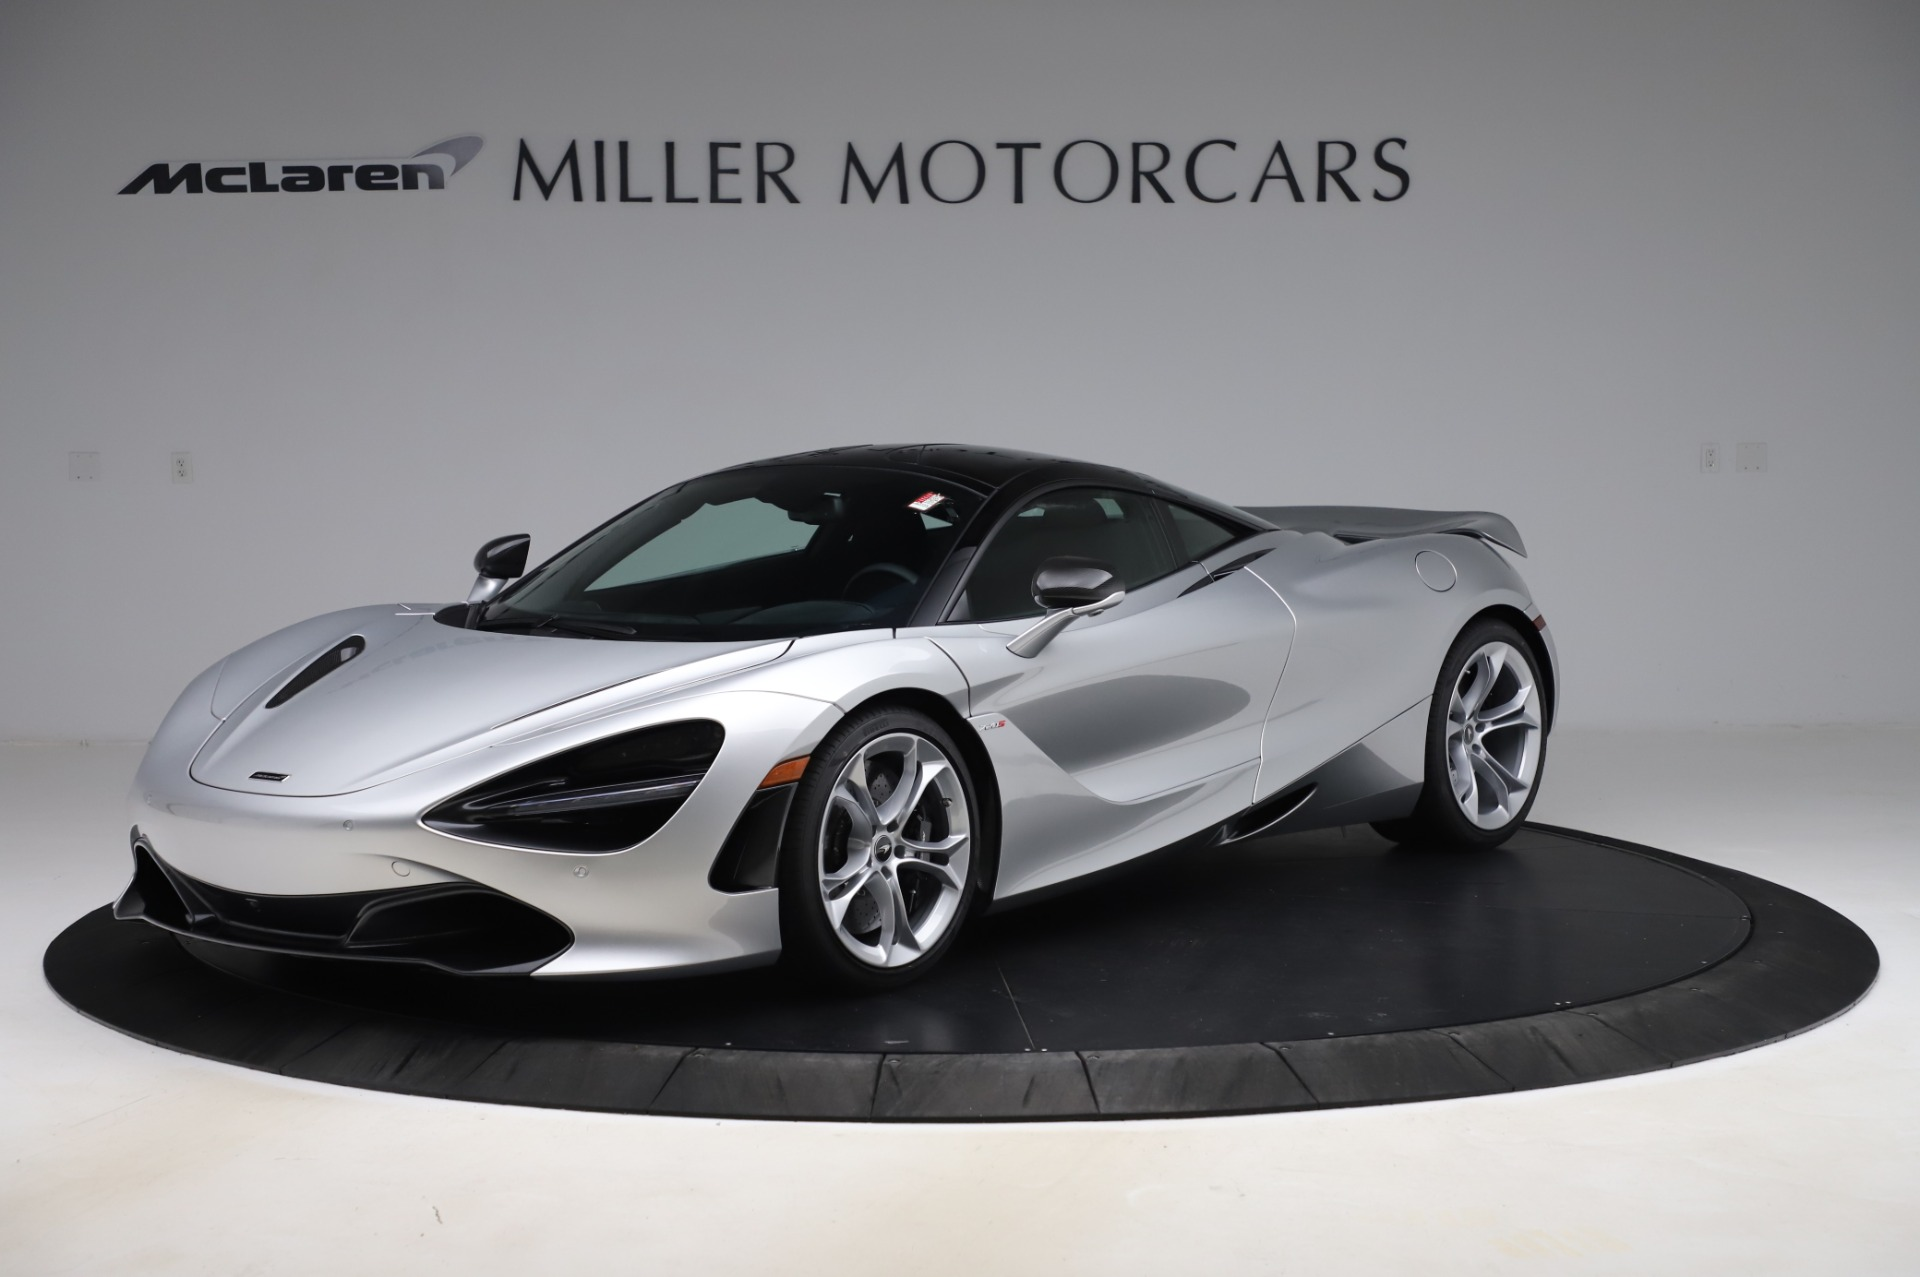 New 2020 McLaren 720S Coupe for sale $347,550 at McLaren Greenwich in Greenwich CT 06830 1